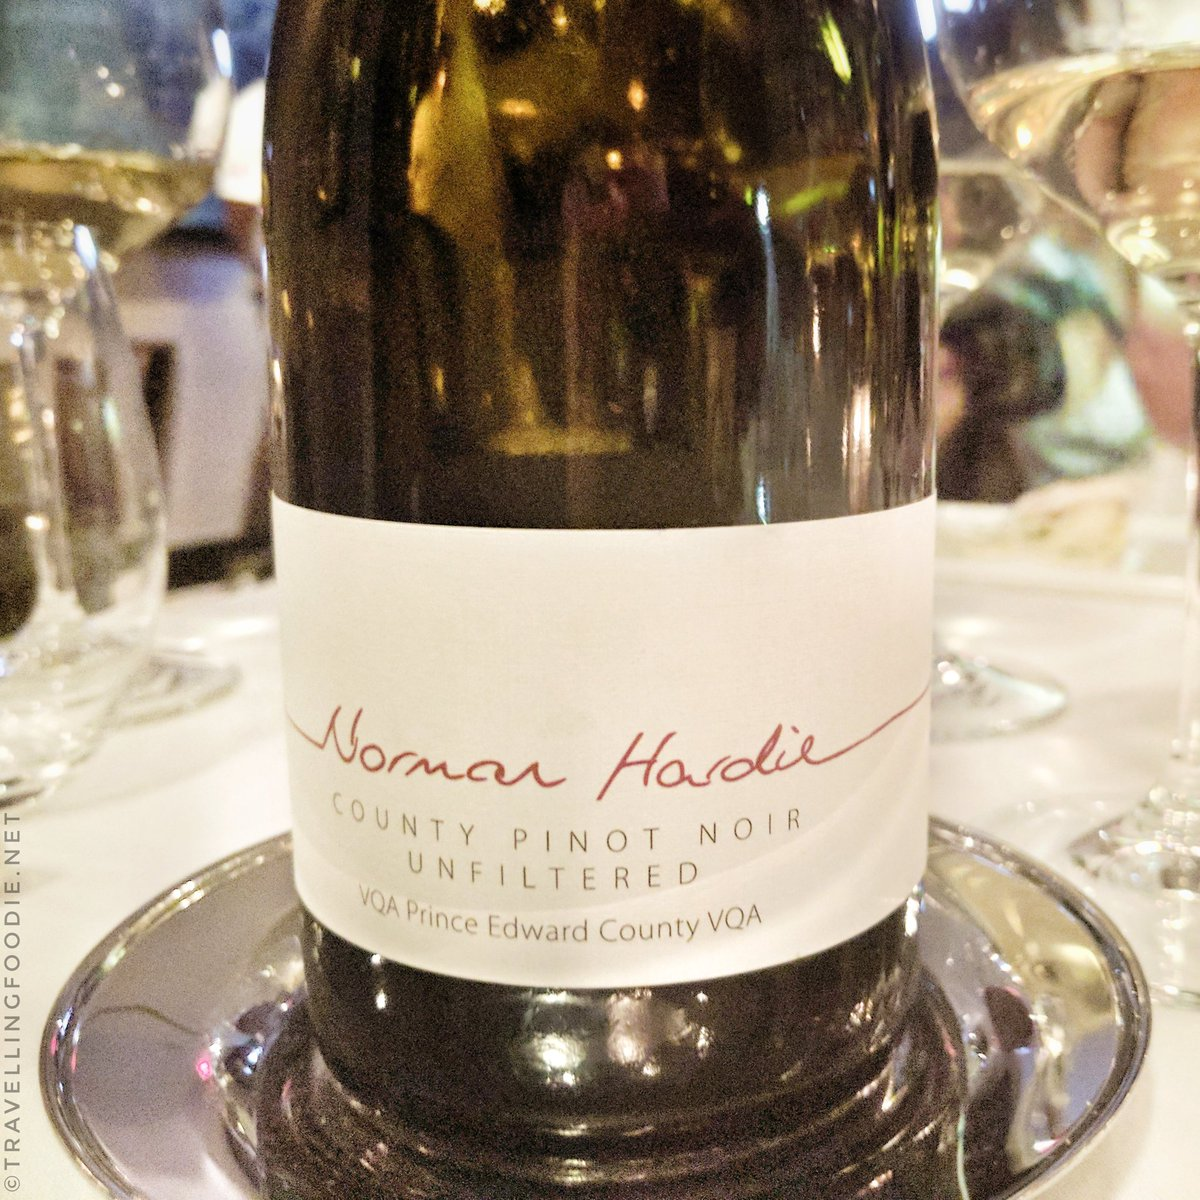 Norman Hardie County Pinot Noir  for Ocean Wise & MLSE Event